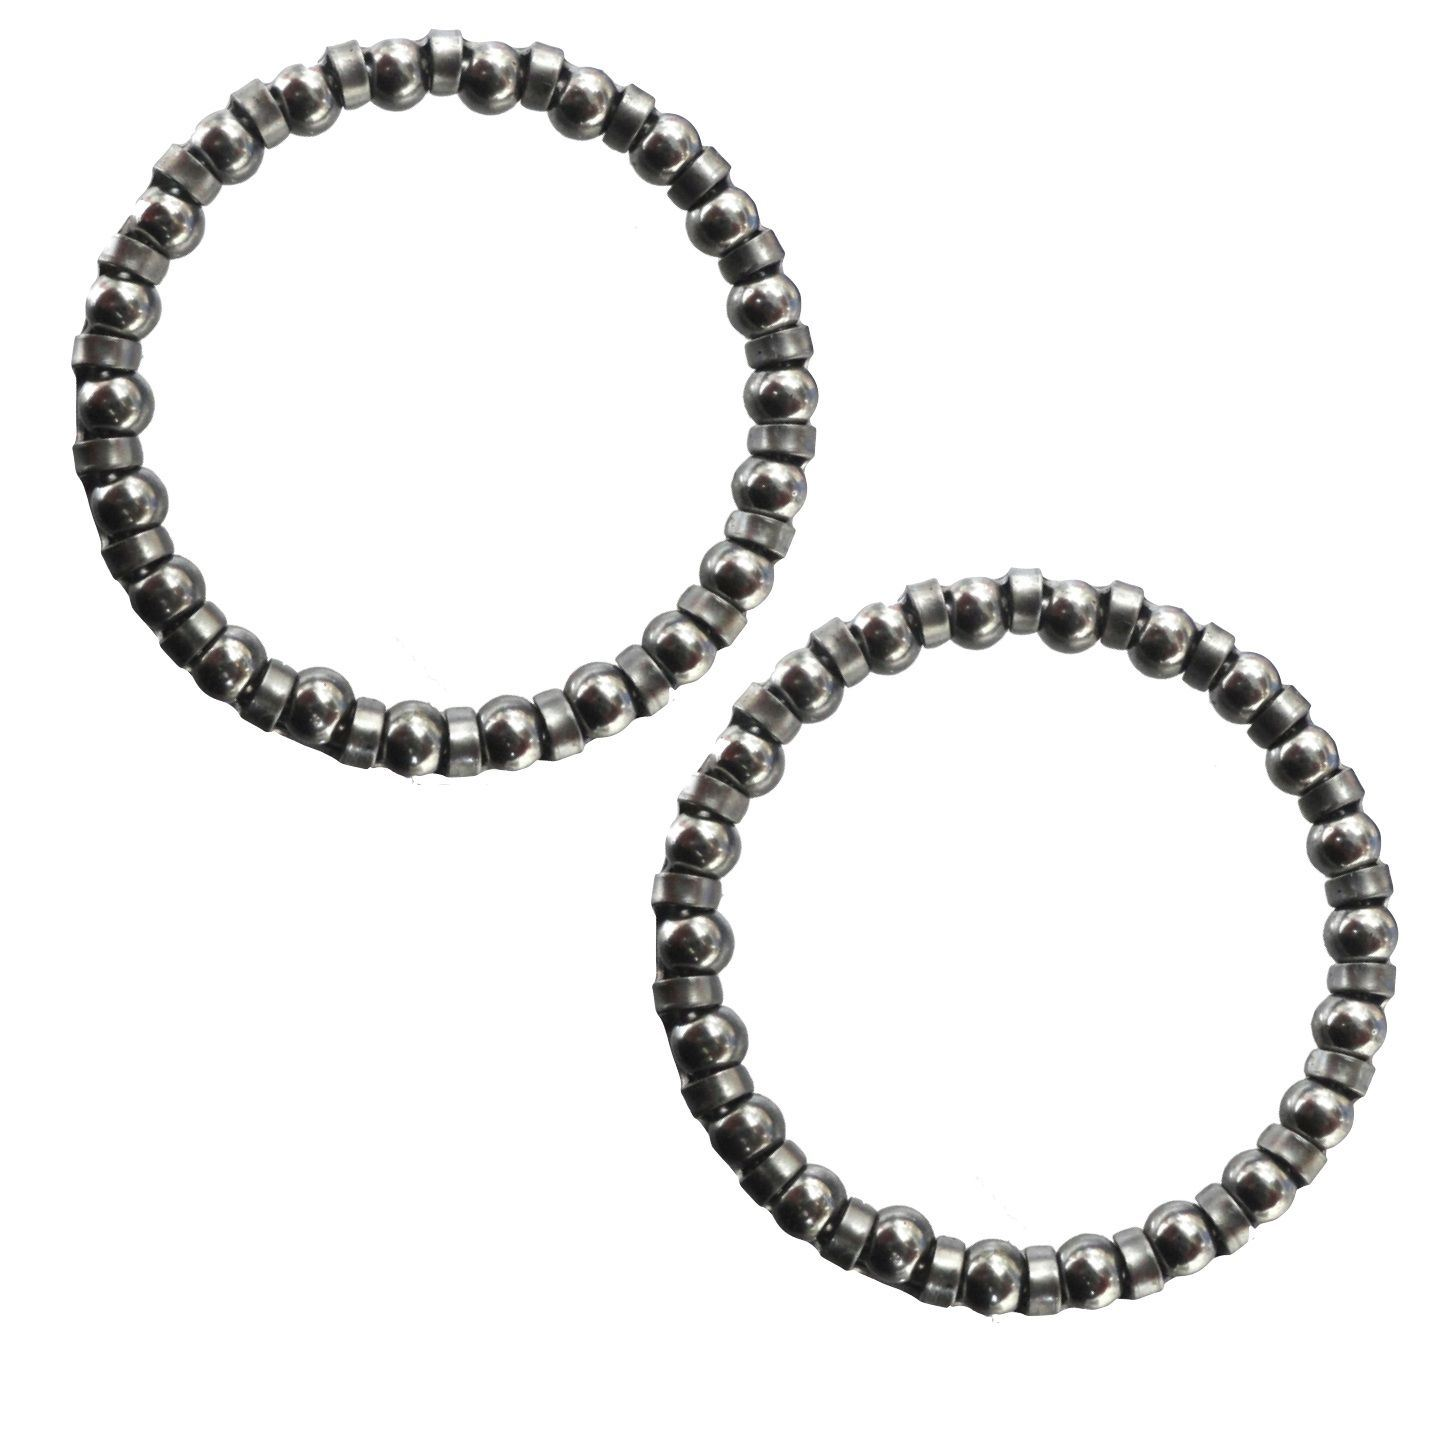 """Ball Bearings 5/32"""" Caged Headset Bearings OVERSIZED in Pairs (Loose Bagged)"""